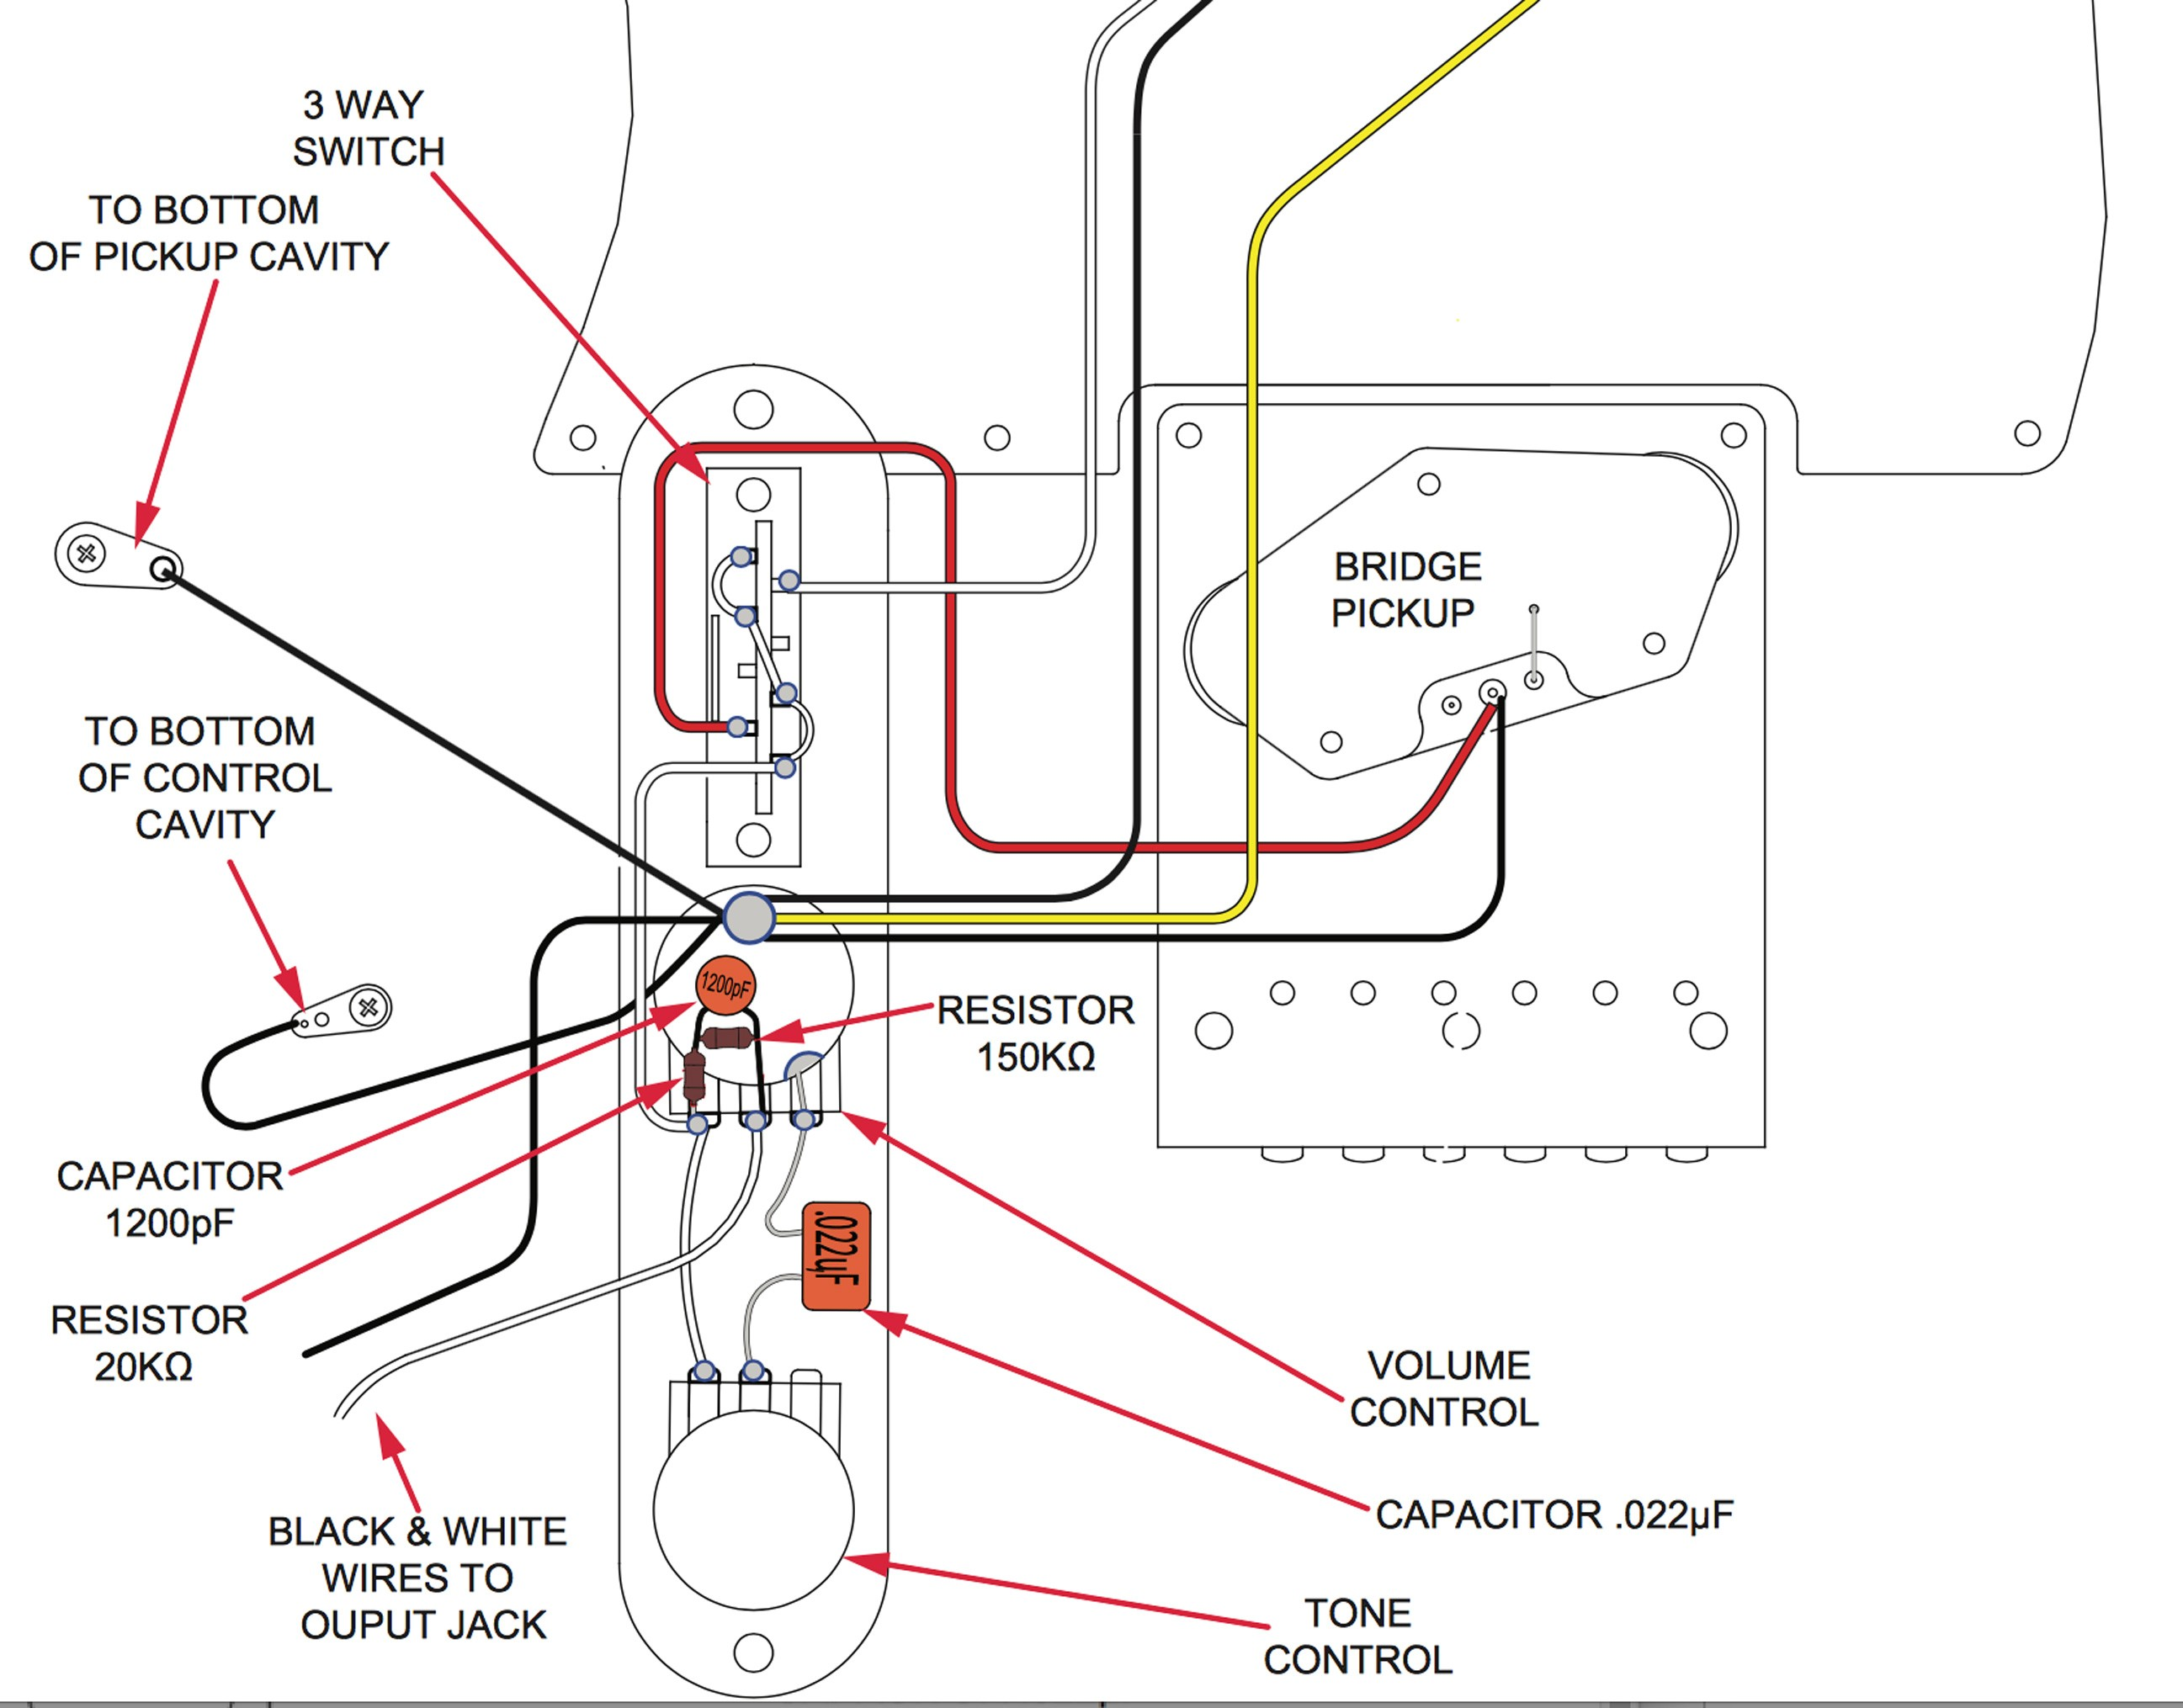 Fender S-1 Switch Wiring Diagram How A Treble Bleed Circuit Can Affect Your tone Of Fender S-1 Switch Wiring Diagram